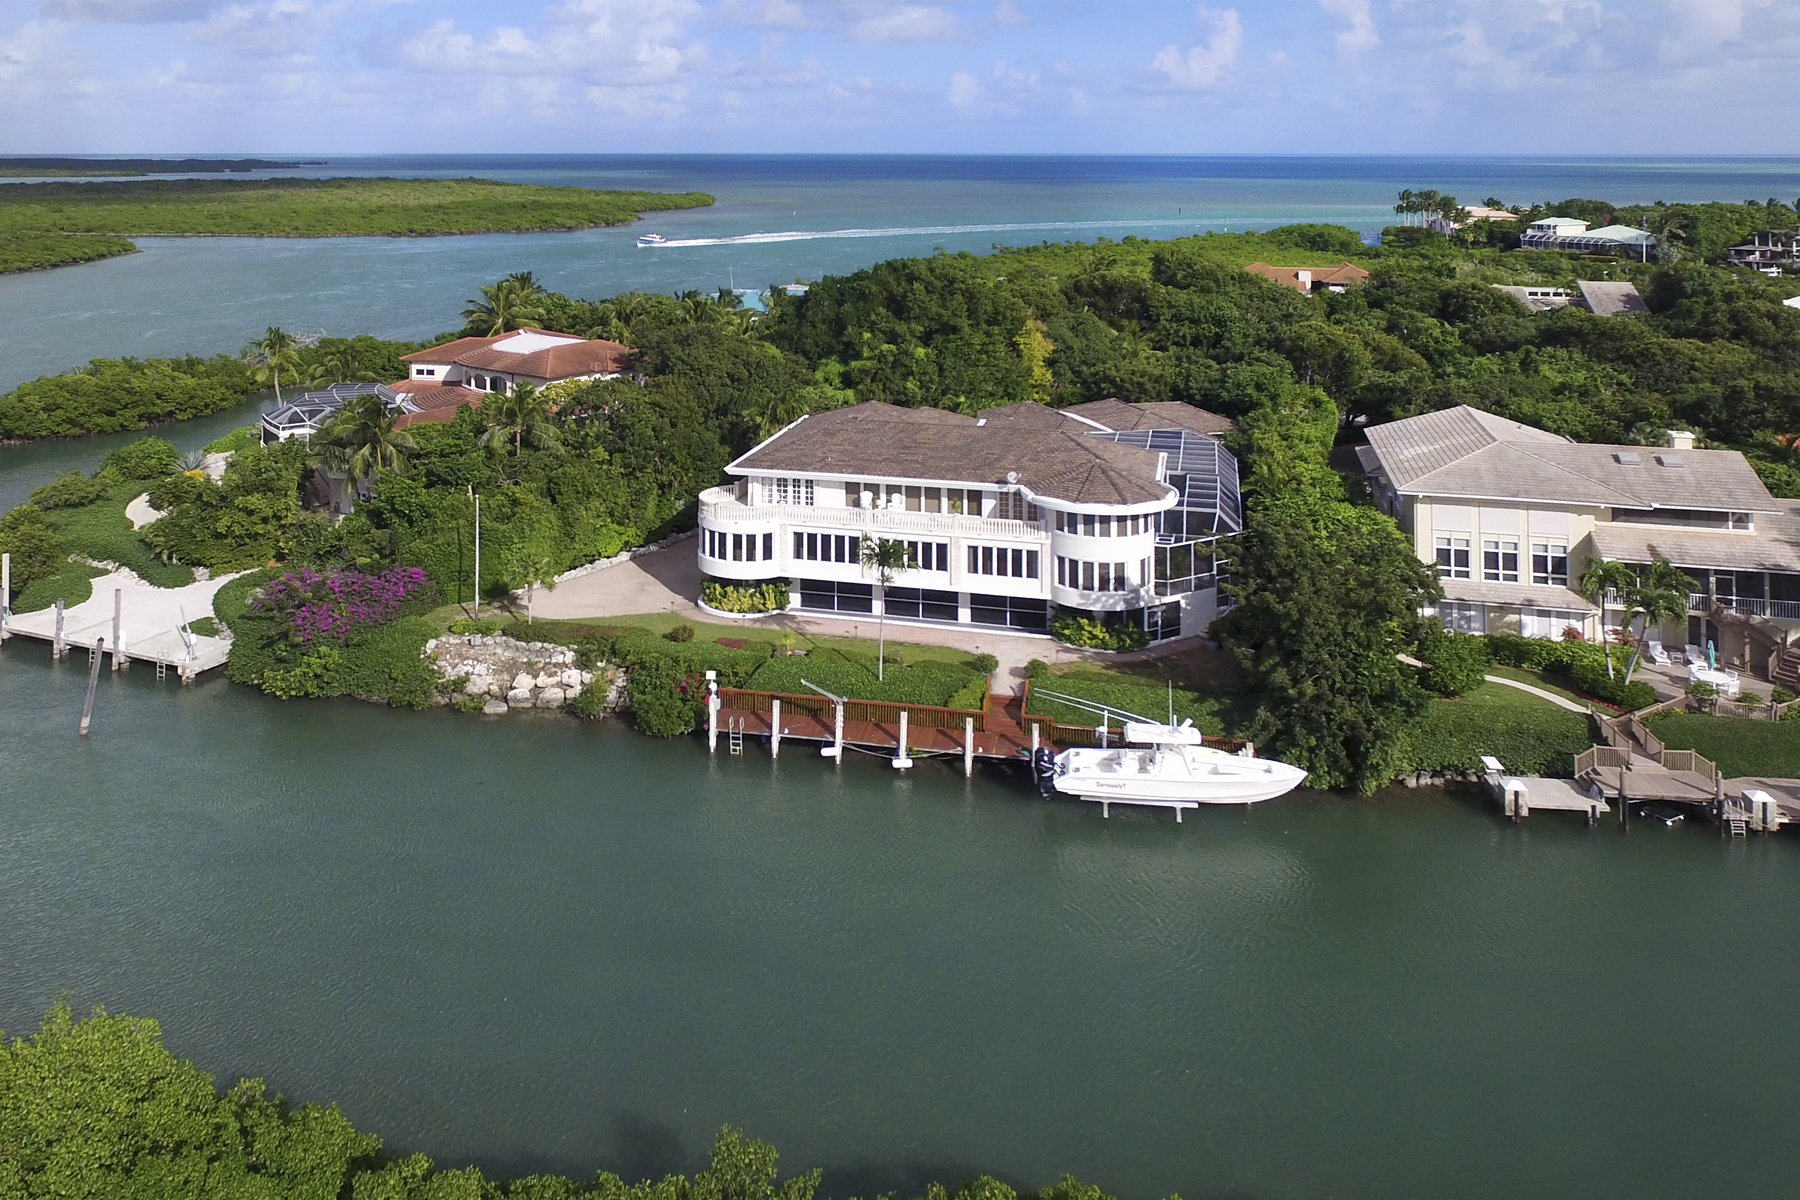 House for Sale at Exceptional Family Compound at Ocean Reef 34 Cardinal Lane Key Largo, Florida 33037 United States